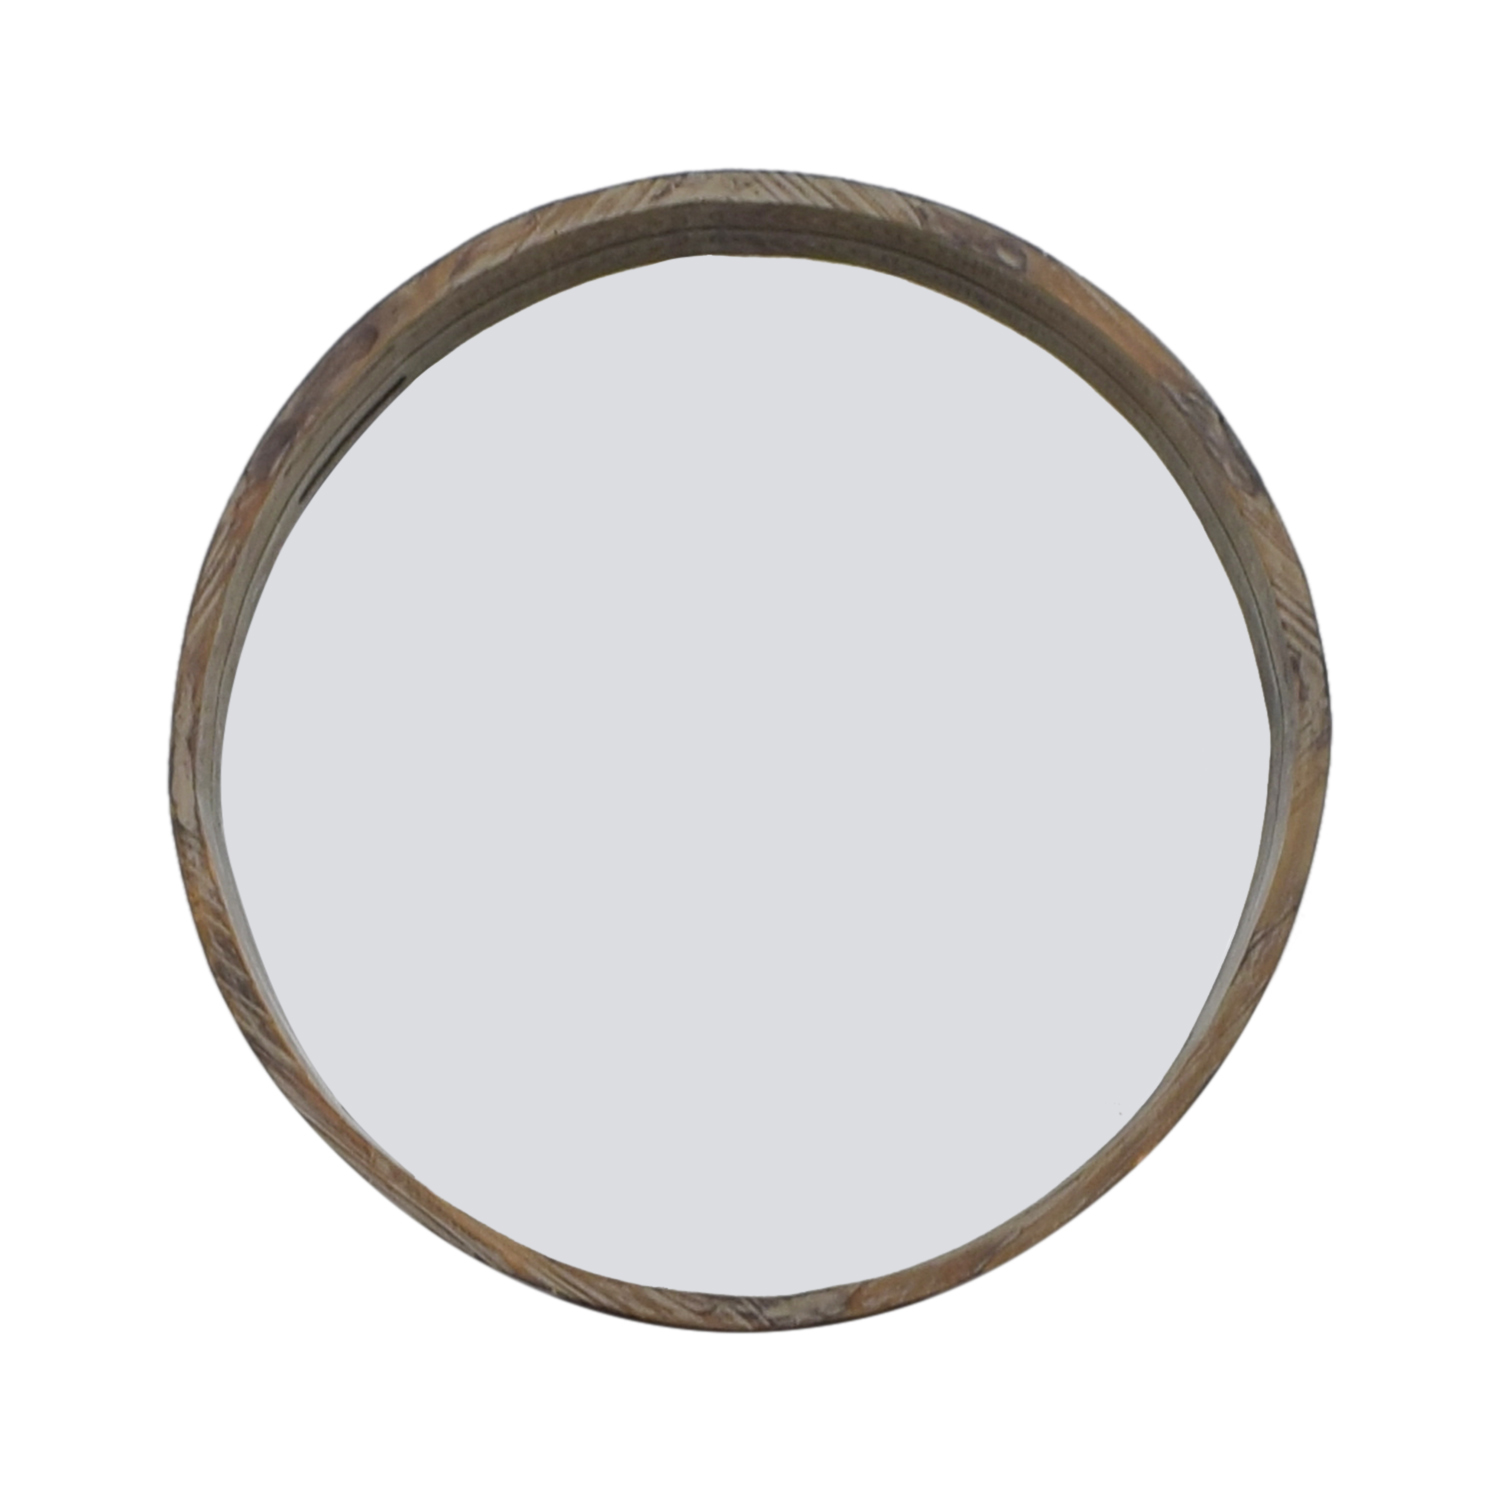 Mercana Mercana Industrial Deep Wood Inset Wall Mirror for sale